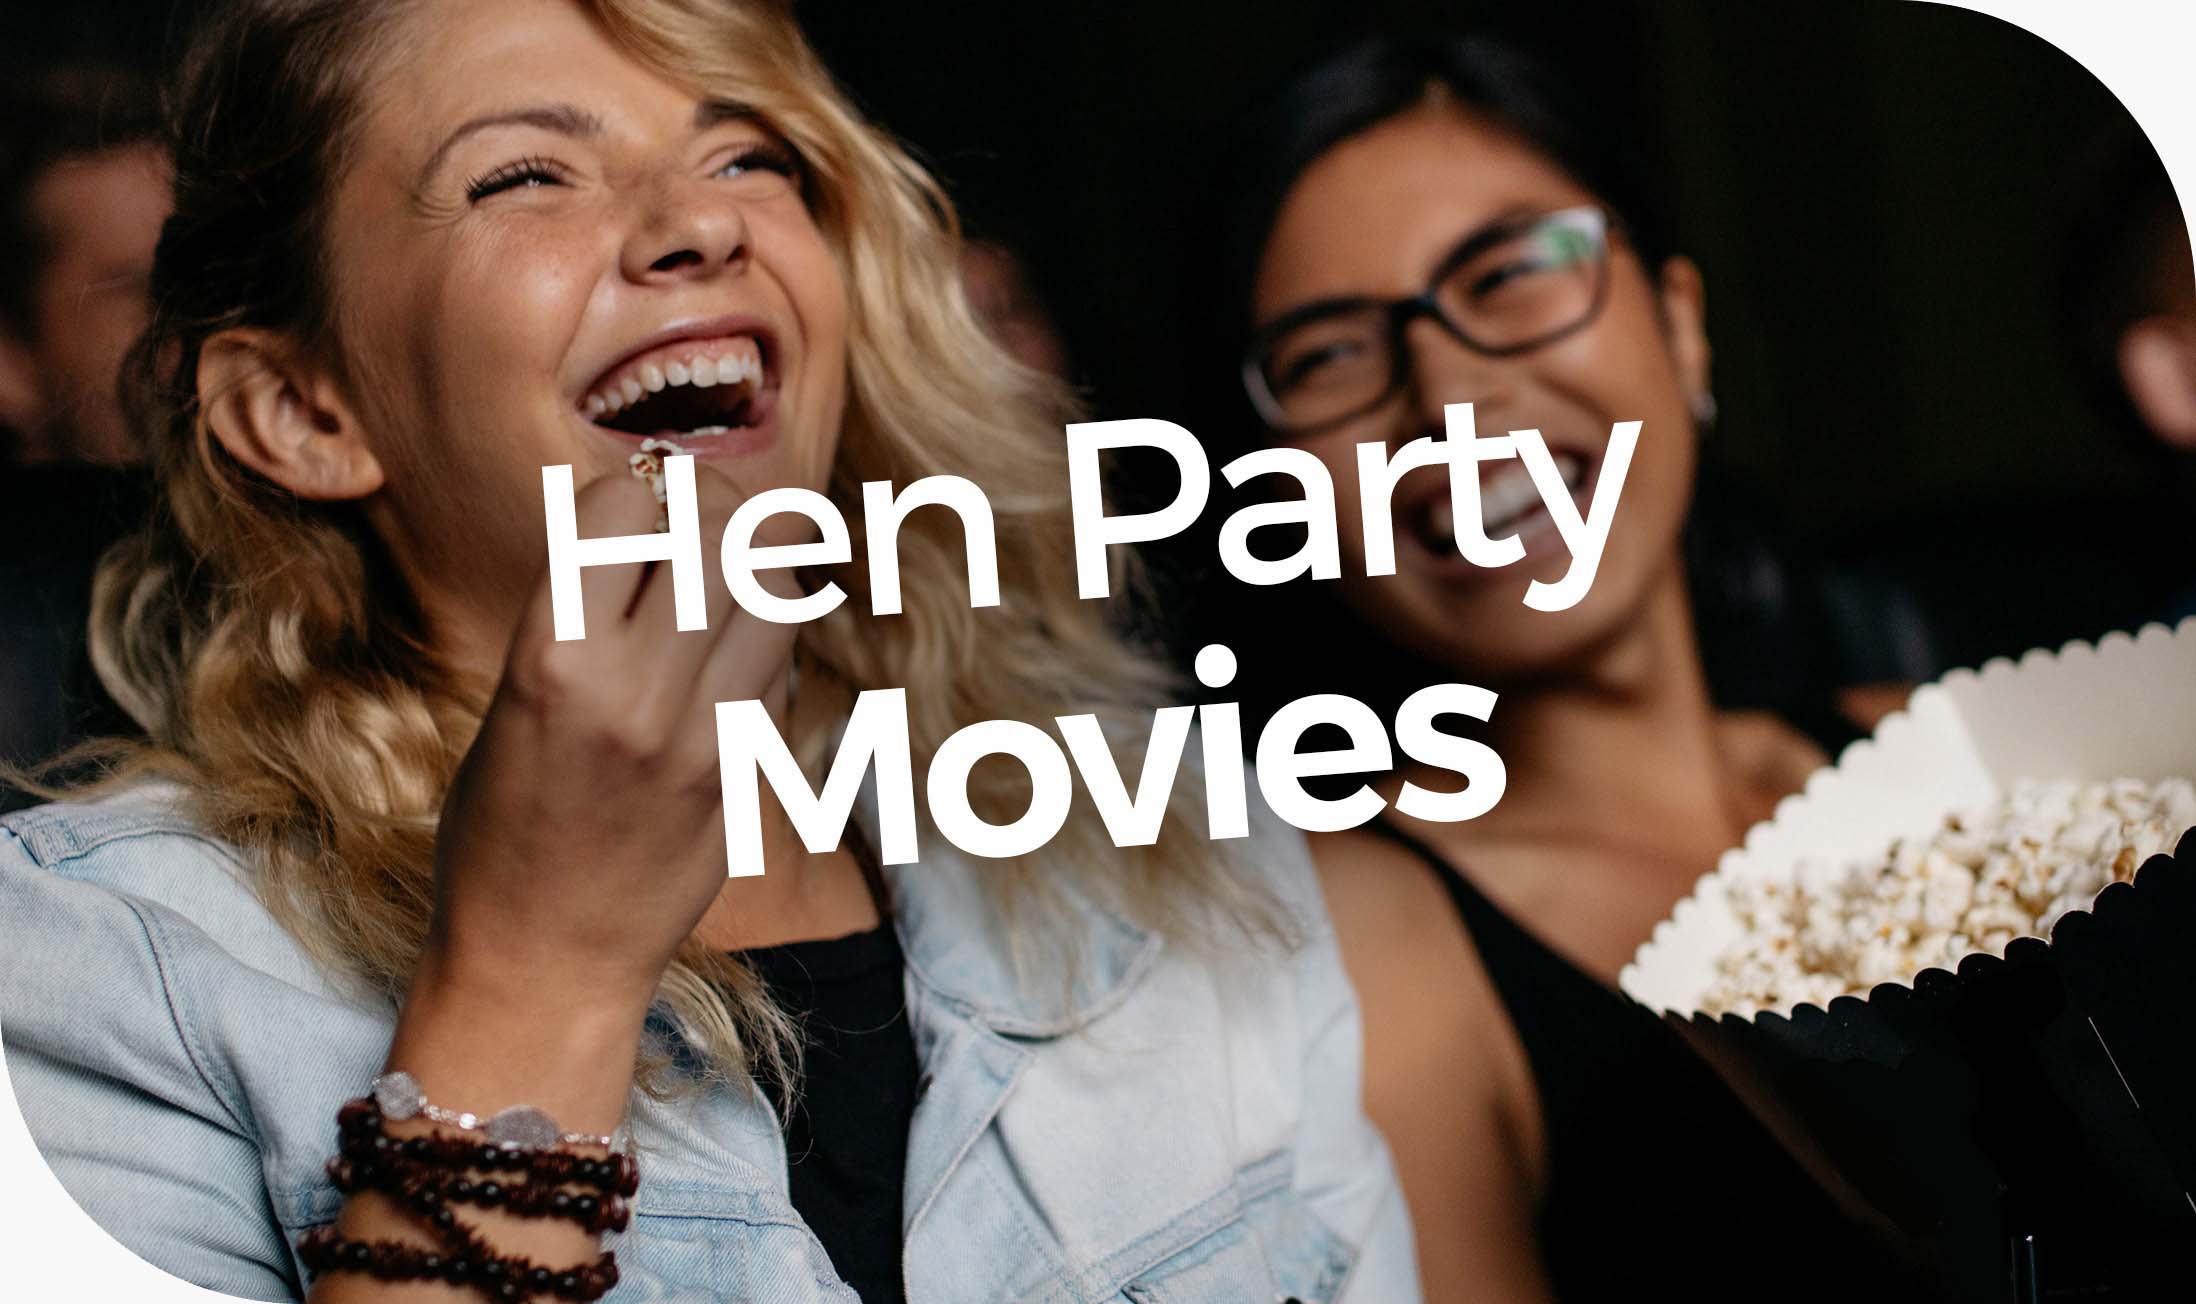 Hen Party Movies